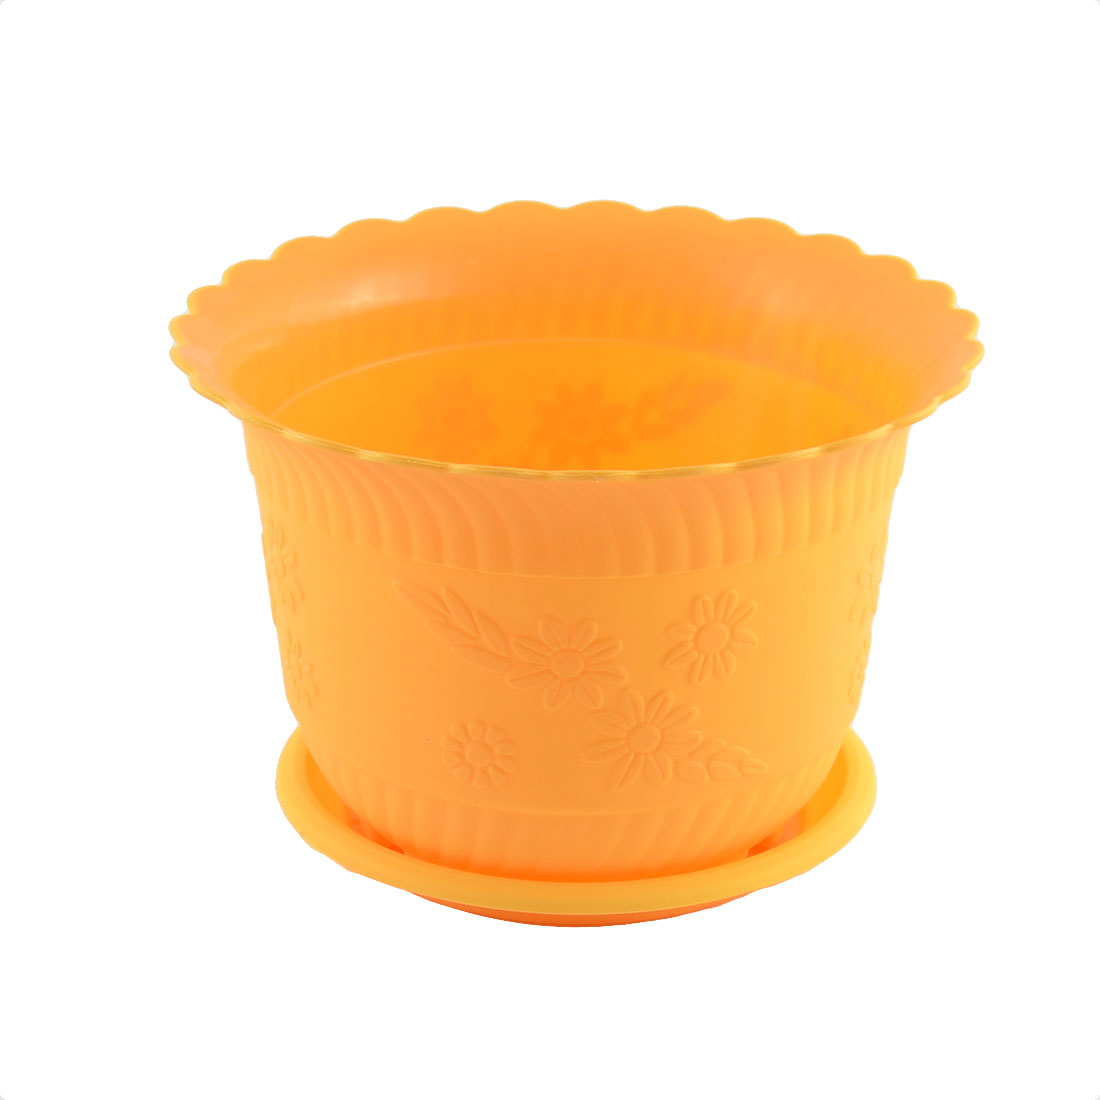 Home Office Garden Plastic Floral Pattern Plant Flower Pot Orange w Tray